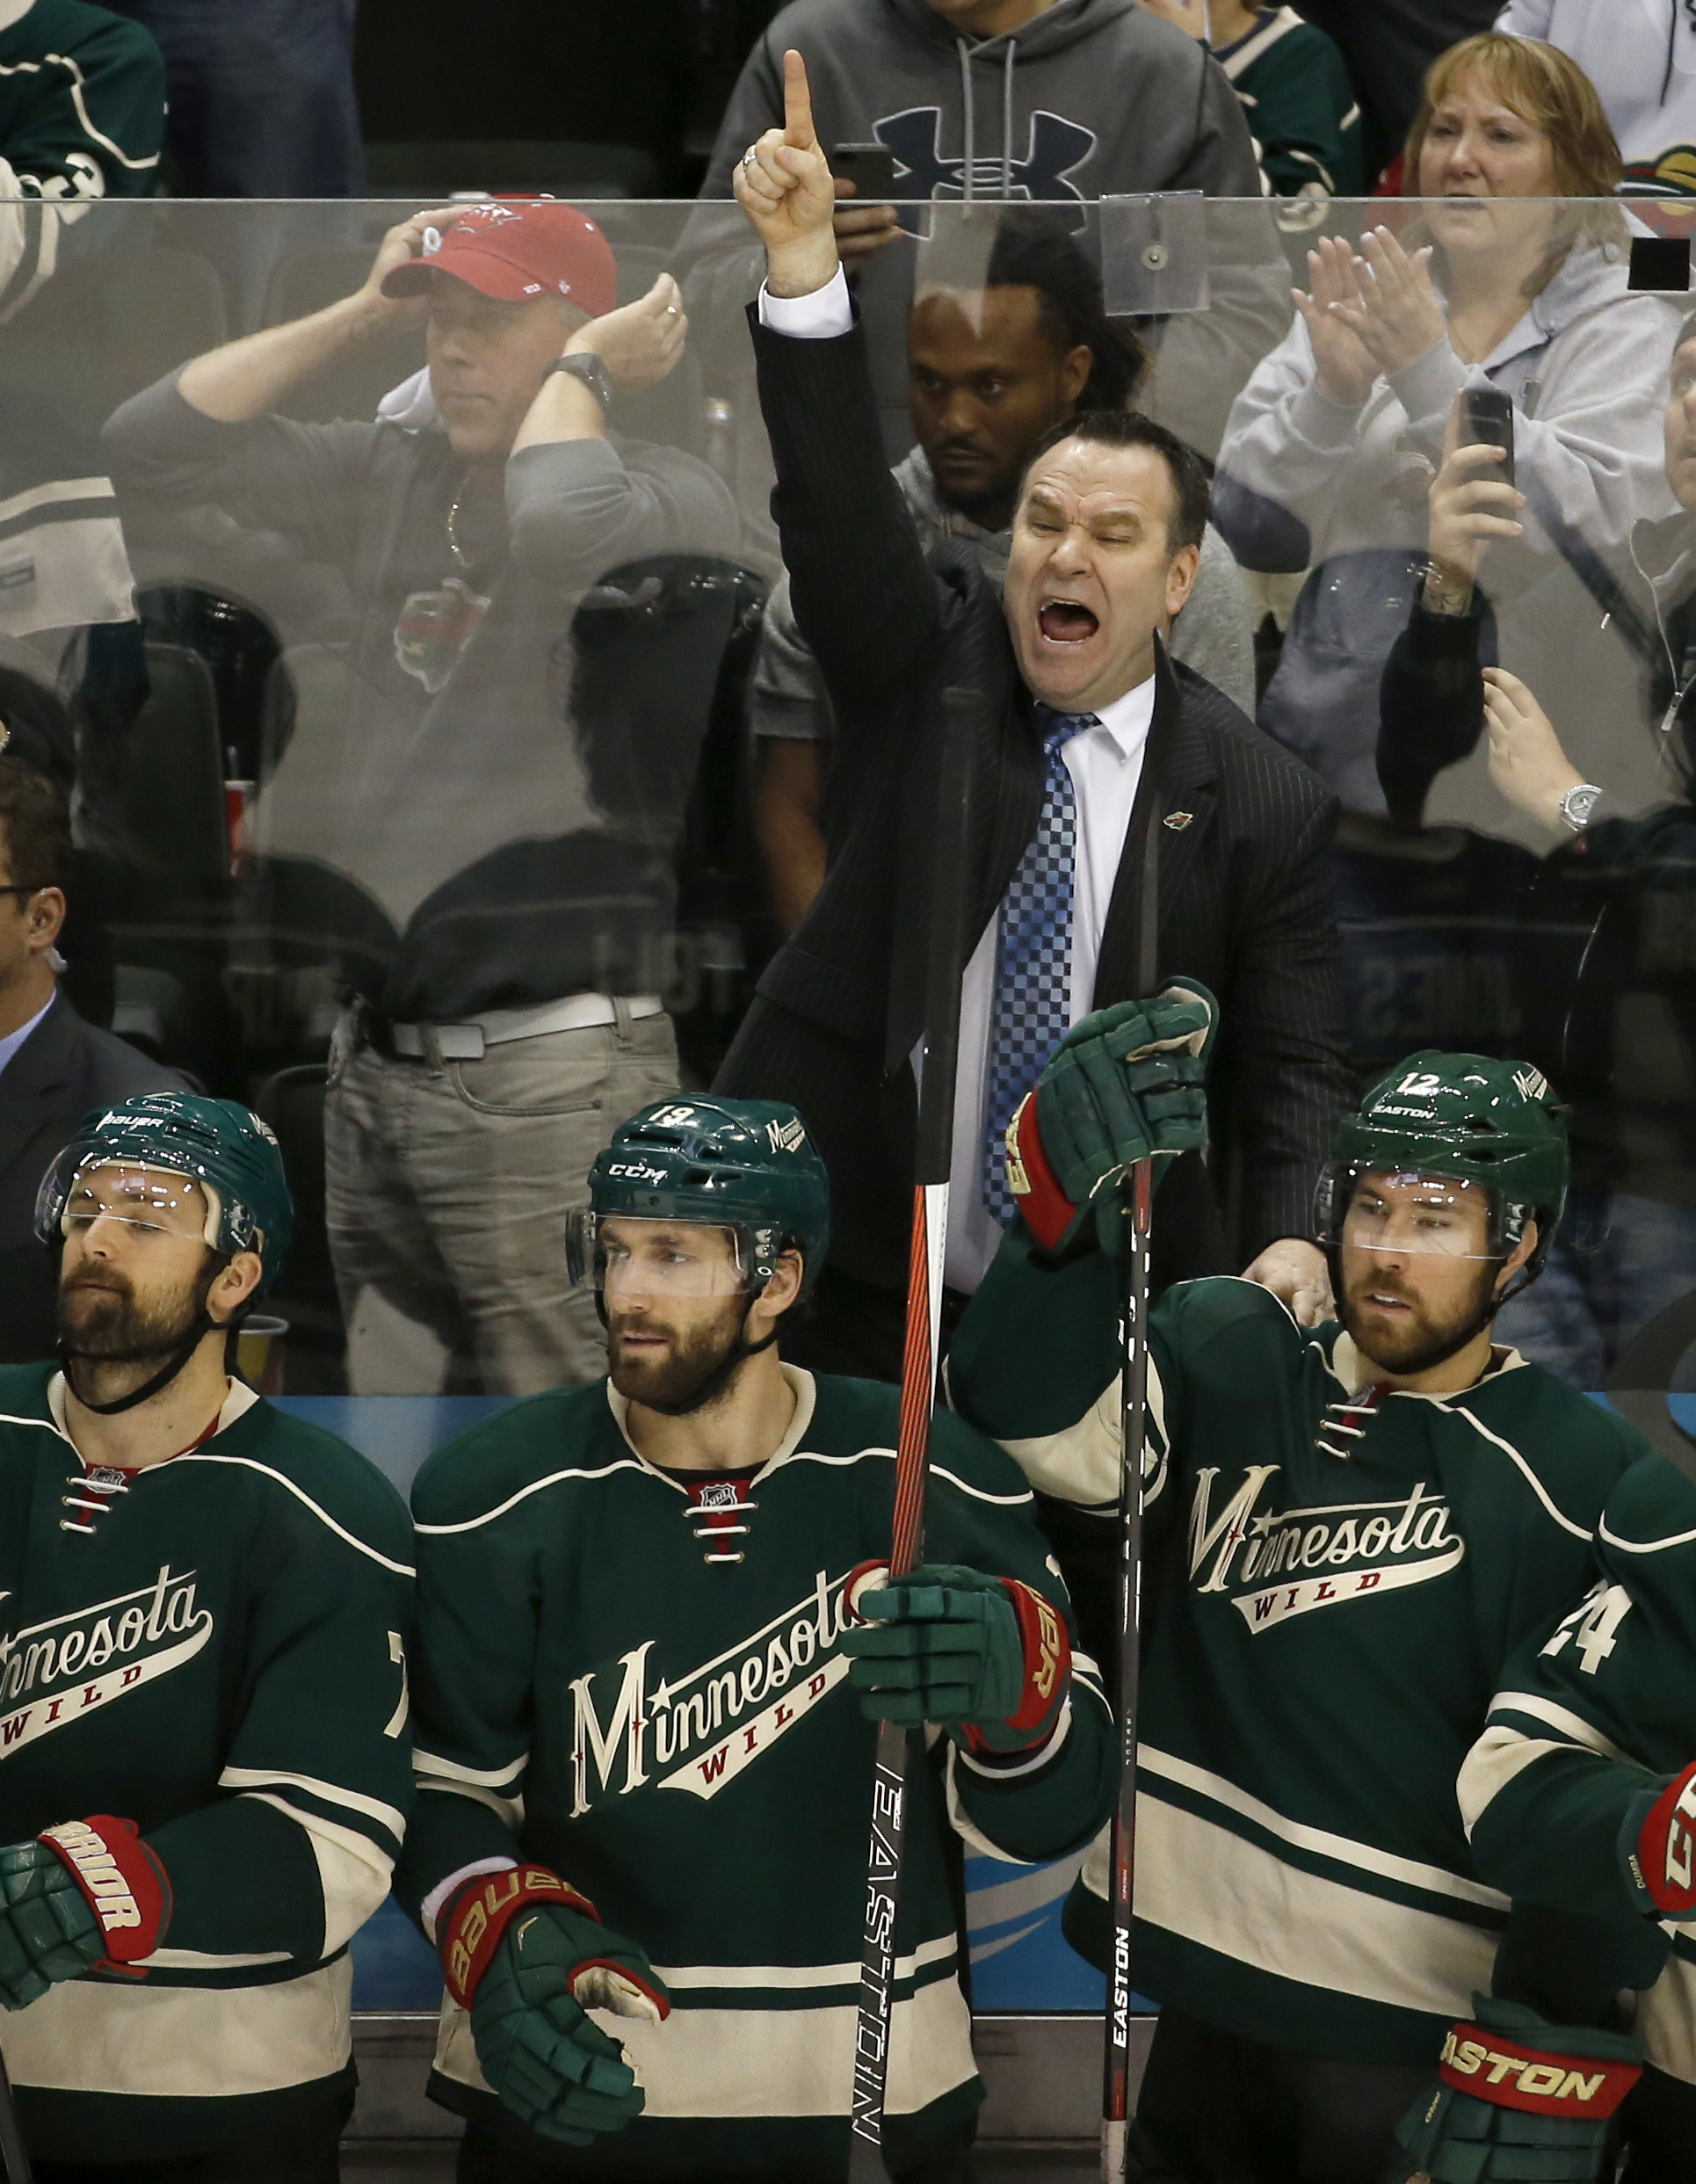 Minnesota Wild head coach John Torchetti, top, yells from the bench during the third period of Game 6 in the first round of the NHL Stanley Cup playoffs against the Dallas Stars in St. Paul, Minn., Sunday, April 24, 2016. The Stars won 5-4 to advance to t